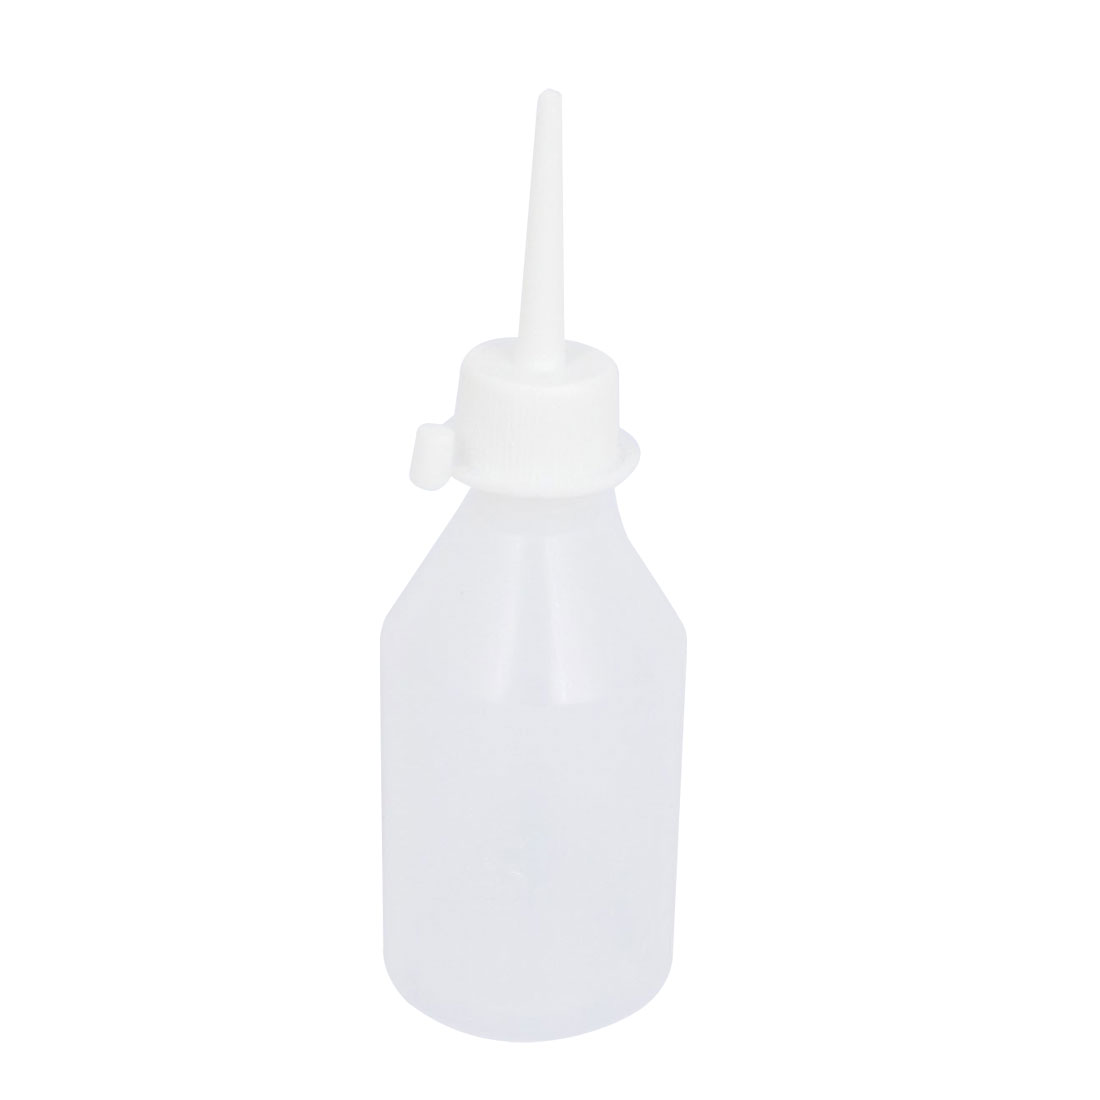 100mL Capacity Squeezable Round Plastic Liquid Oil Glue Bottle Holder White